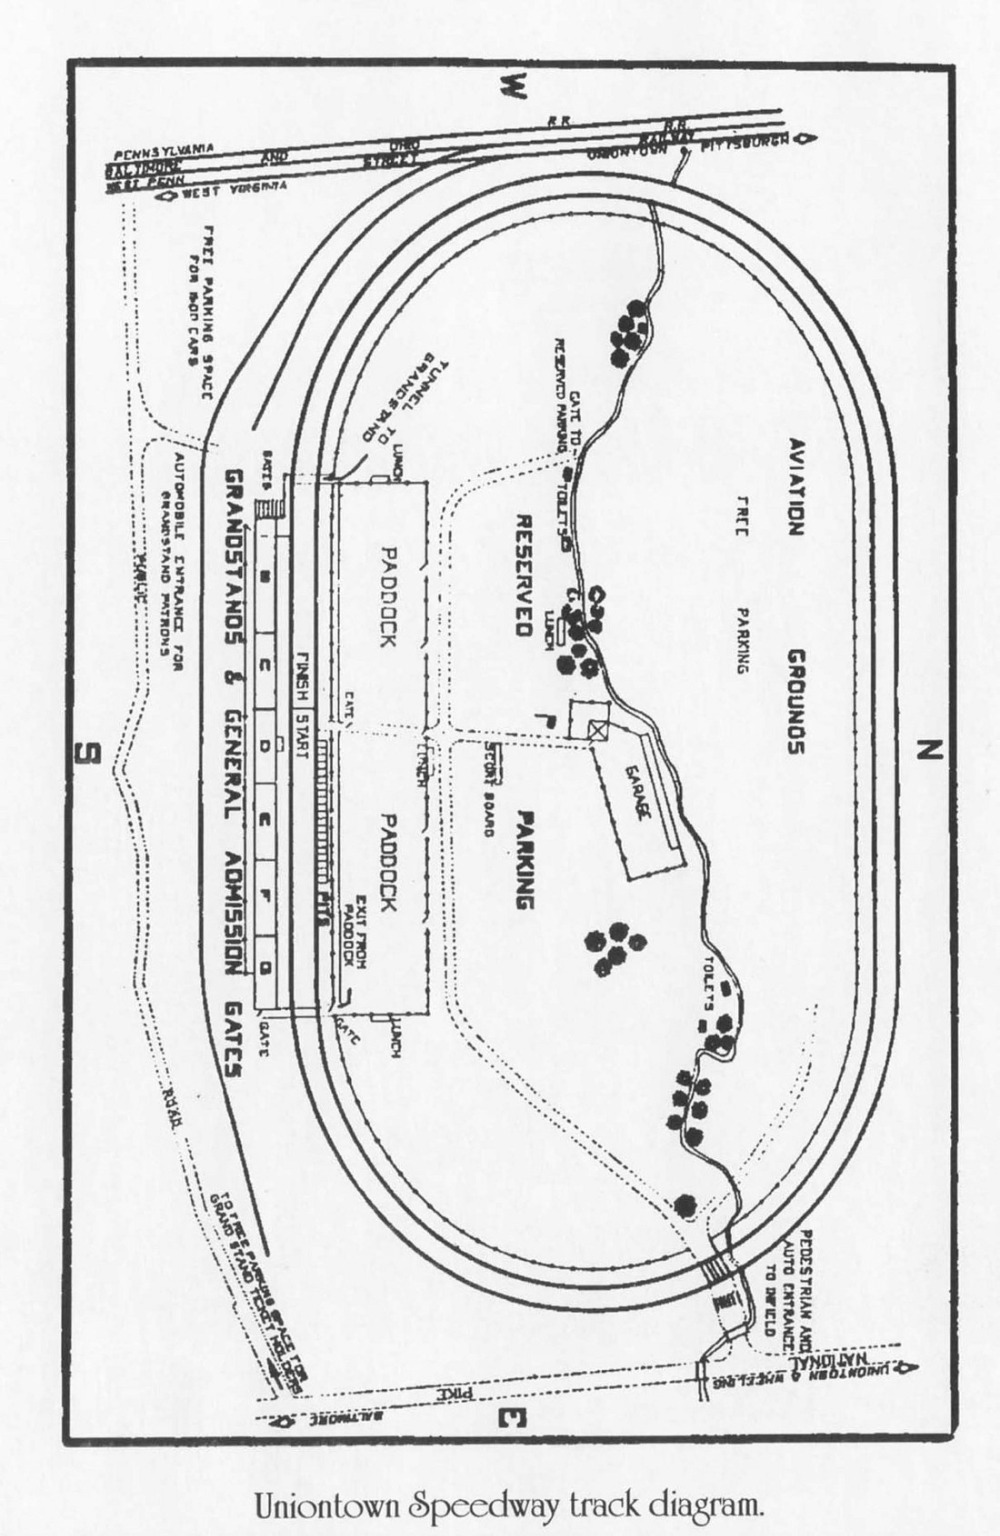 hight resolution of uniontown speedway board track diagram 1916 marci s vintage photos original stories